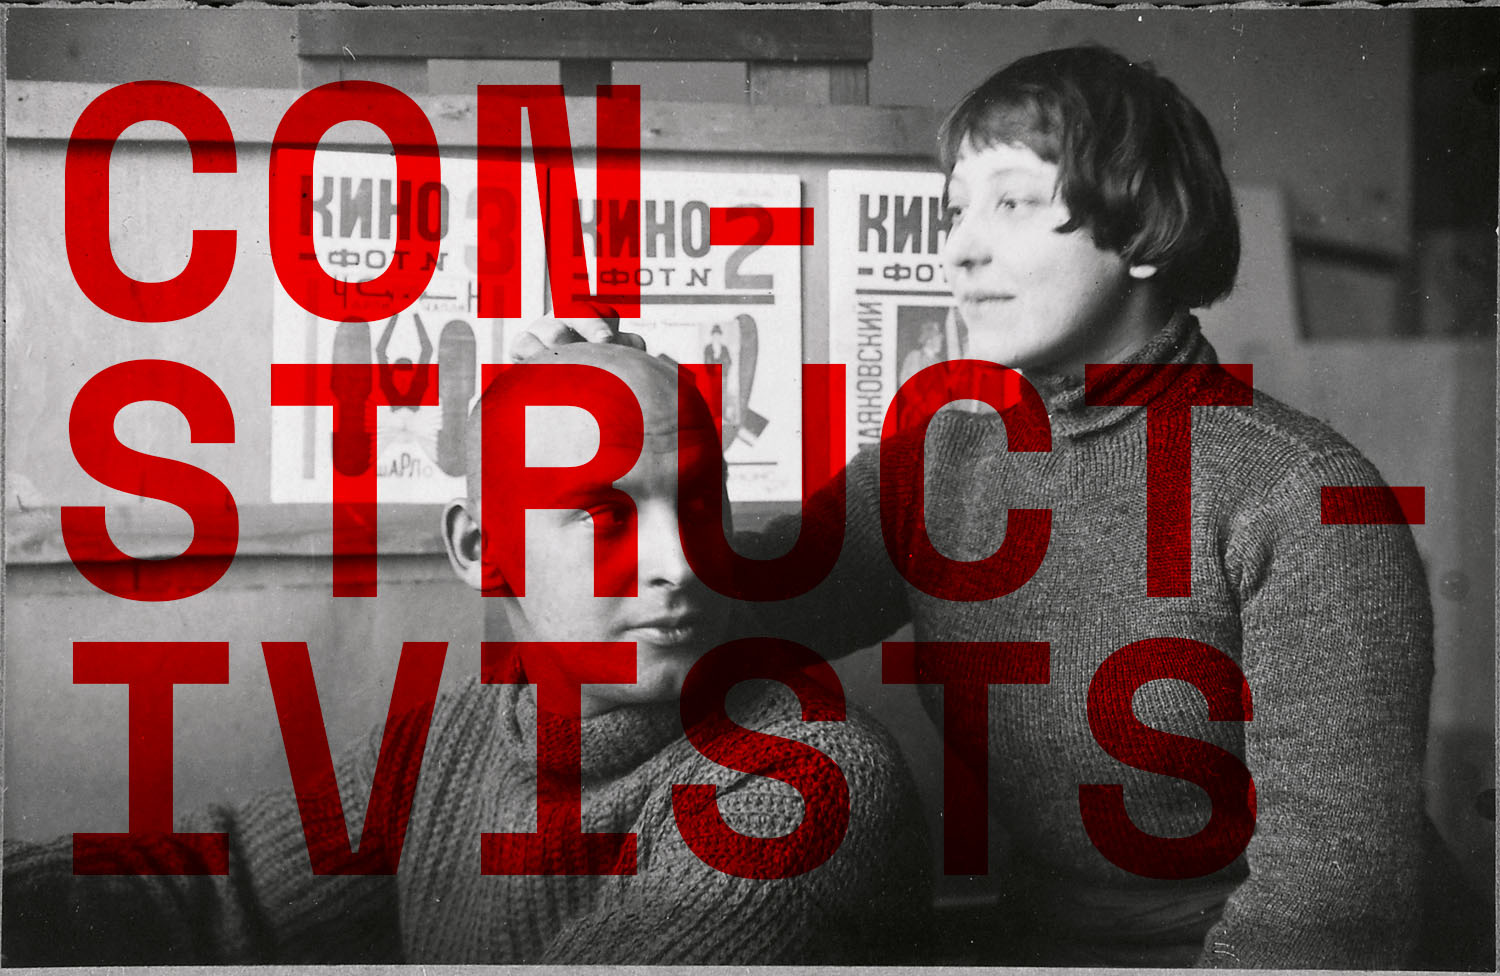 Constructivists Rodchenko and Stepanova